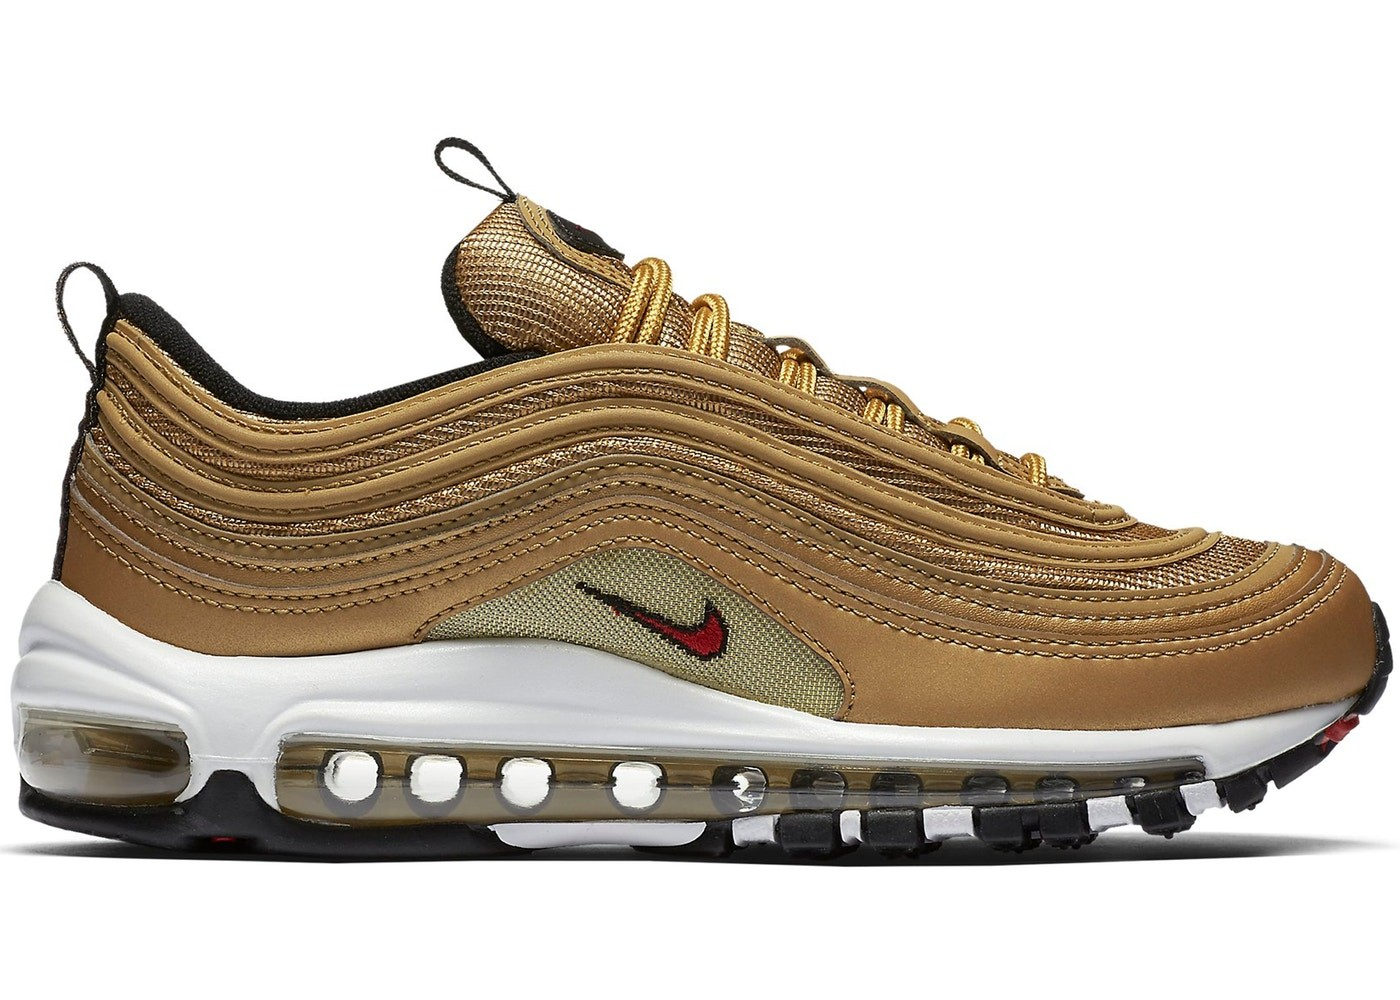 Nike Air Max 97 Donne Metallic Gold/Rosse-Bianche 885691-700